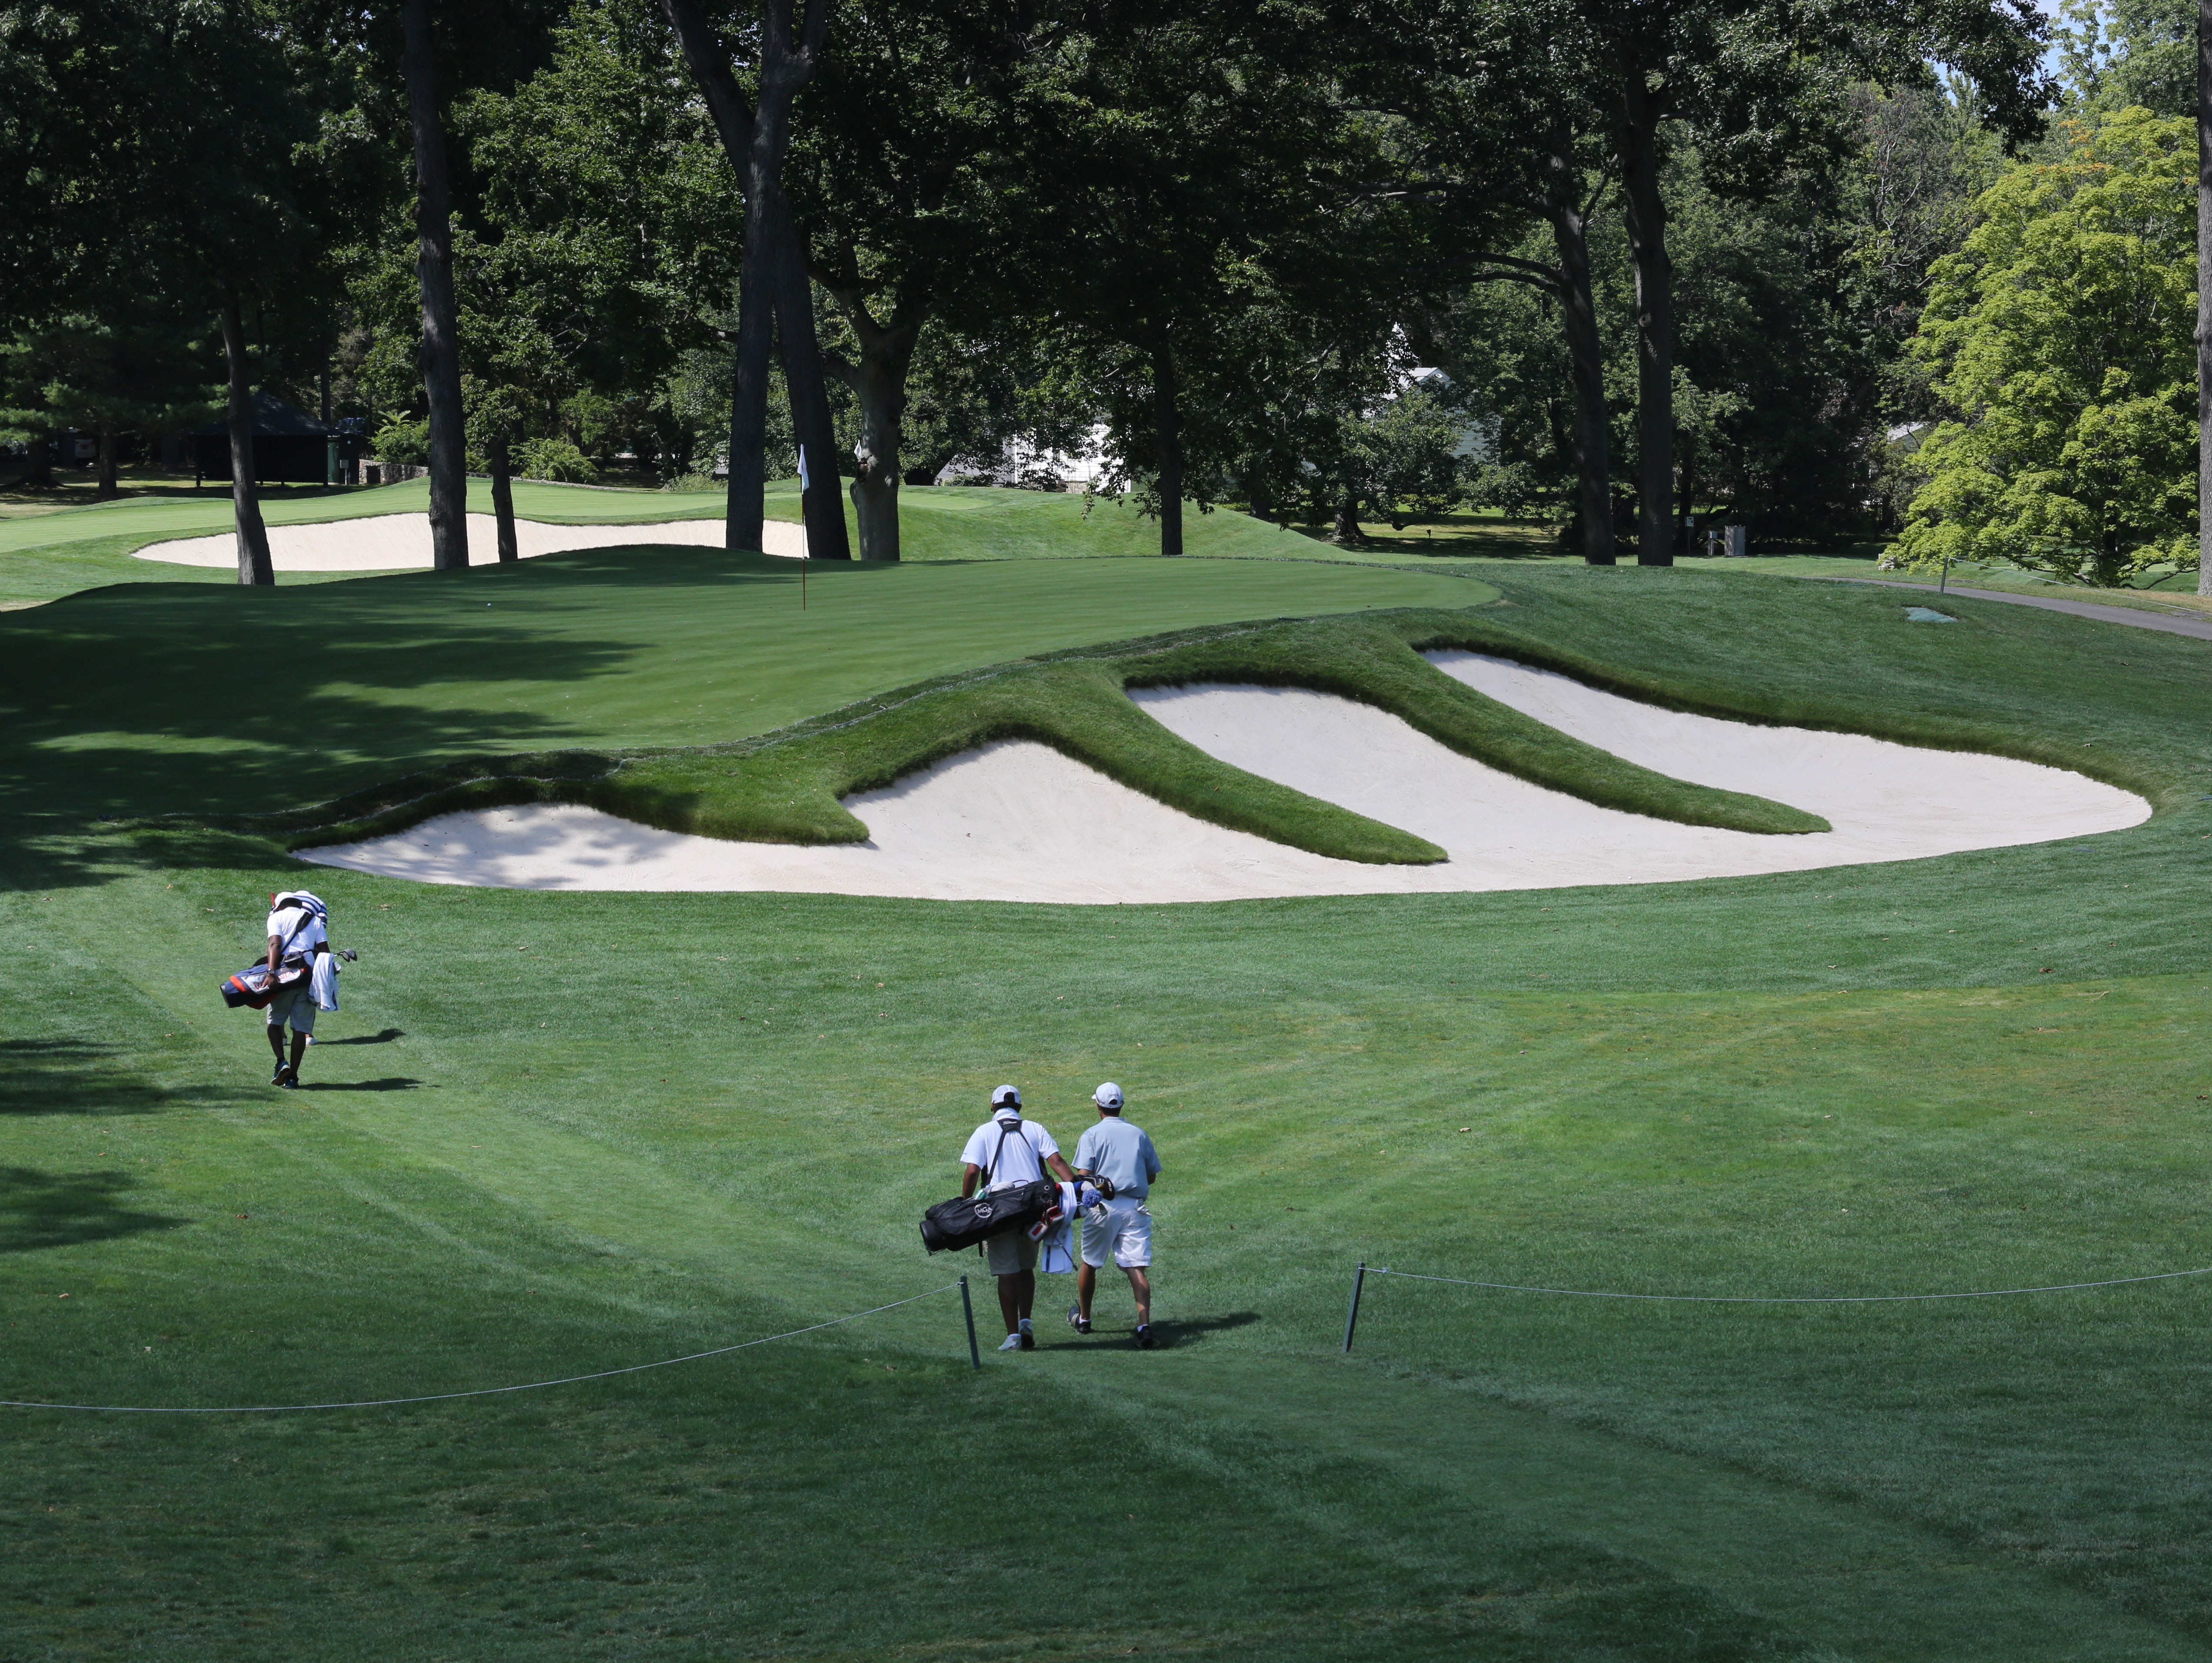 The approach to the 13th green on the East Course at the Winged Foot Golf Club in Mamaroneck, Aug. 13, 2015. The East Course, recently restored, is hosting the USGA Four-Ball Championship next spring.